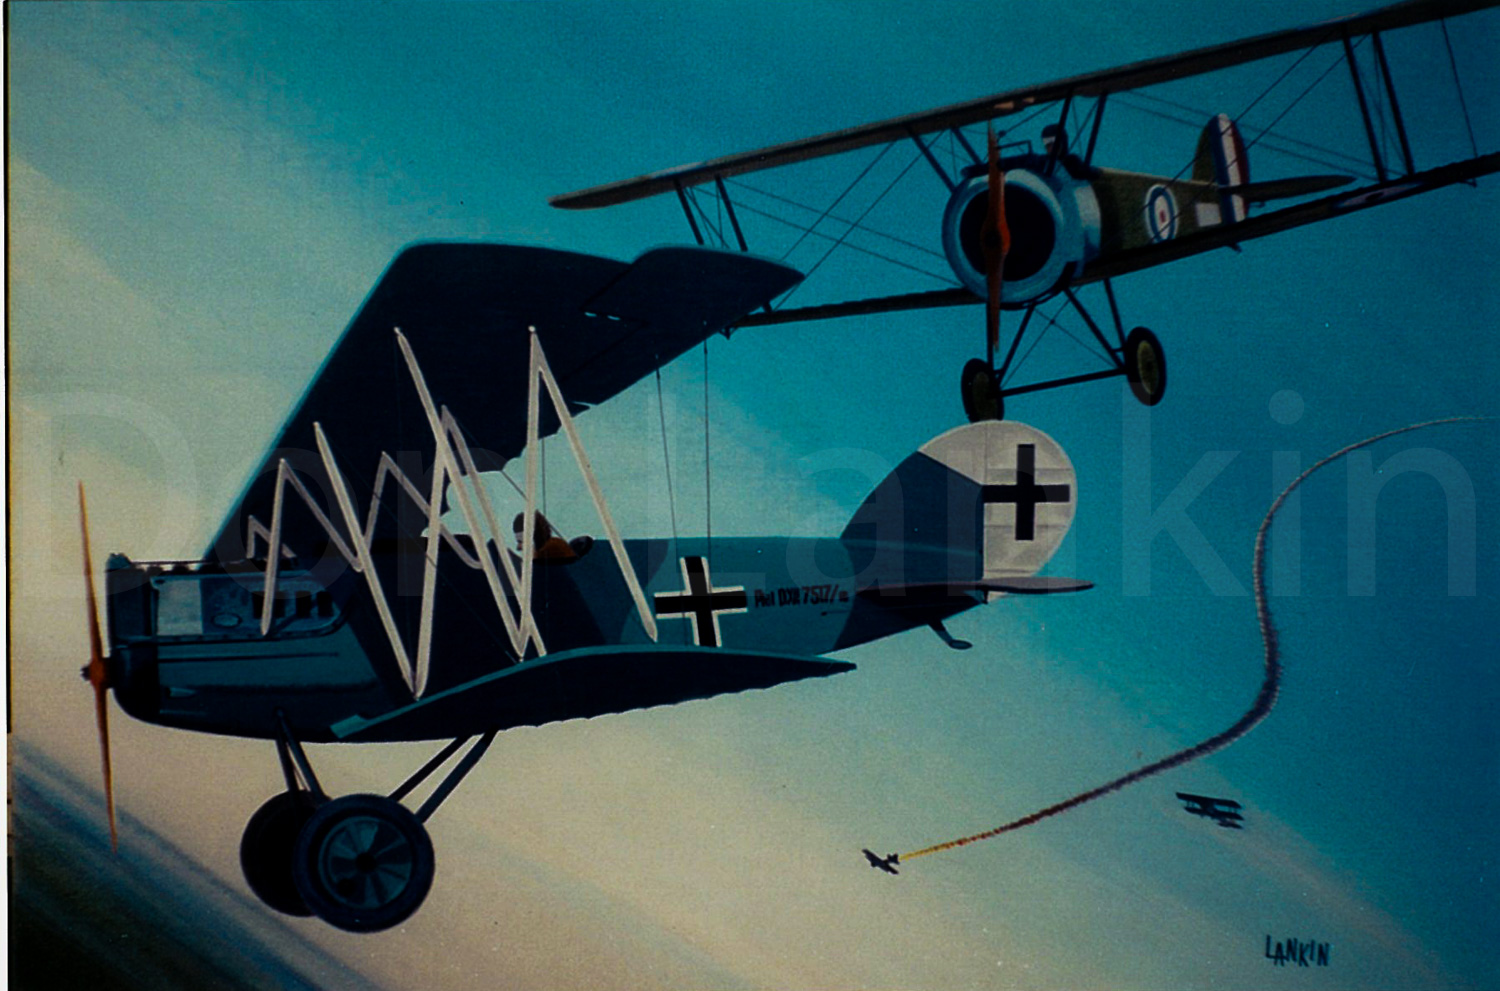 Sopwith Camel of the R.F.C. shown in combat with a German Pfalz D-XII over the Western Front WWI.